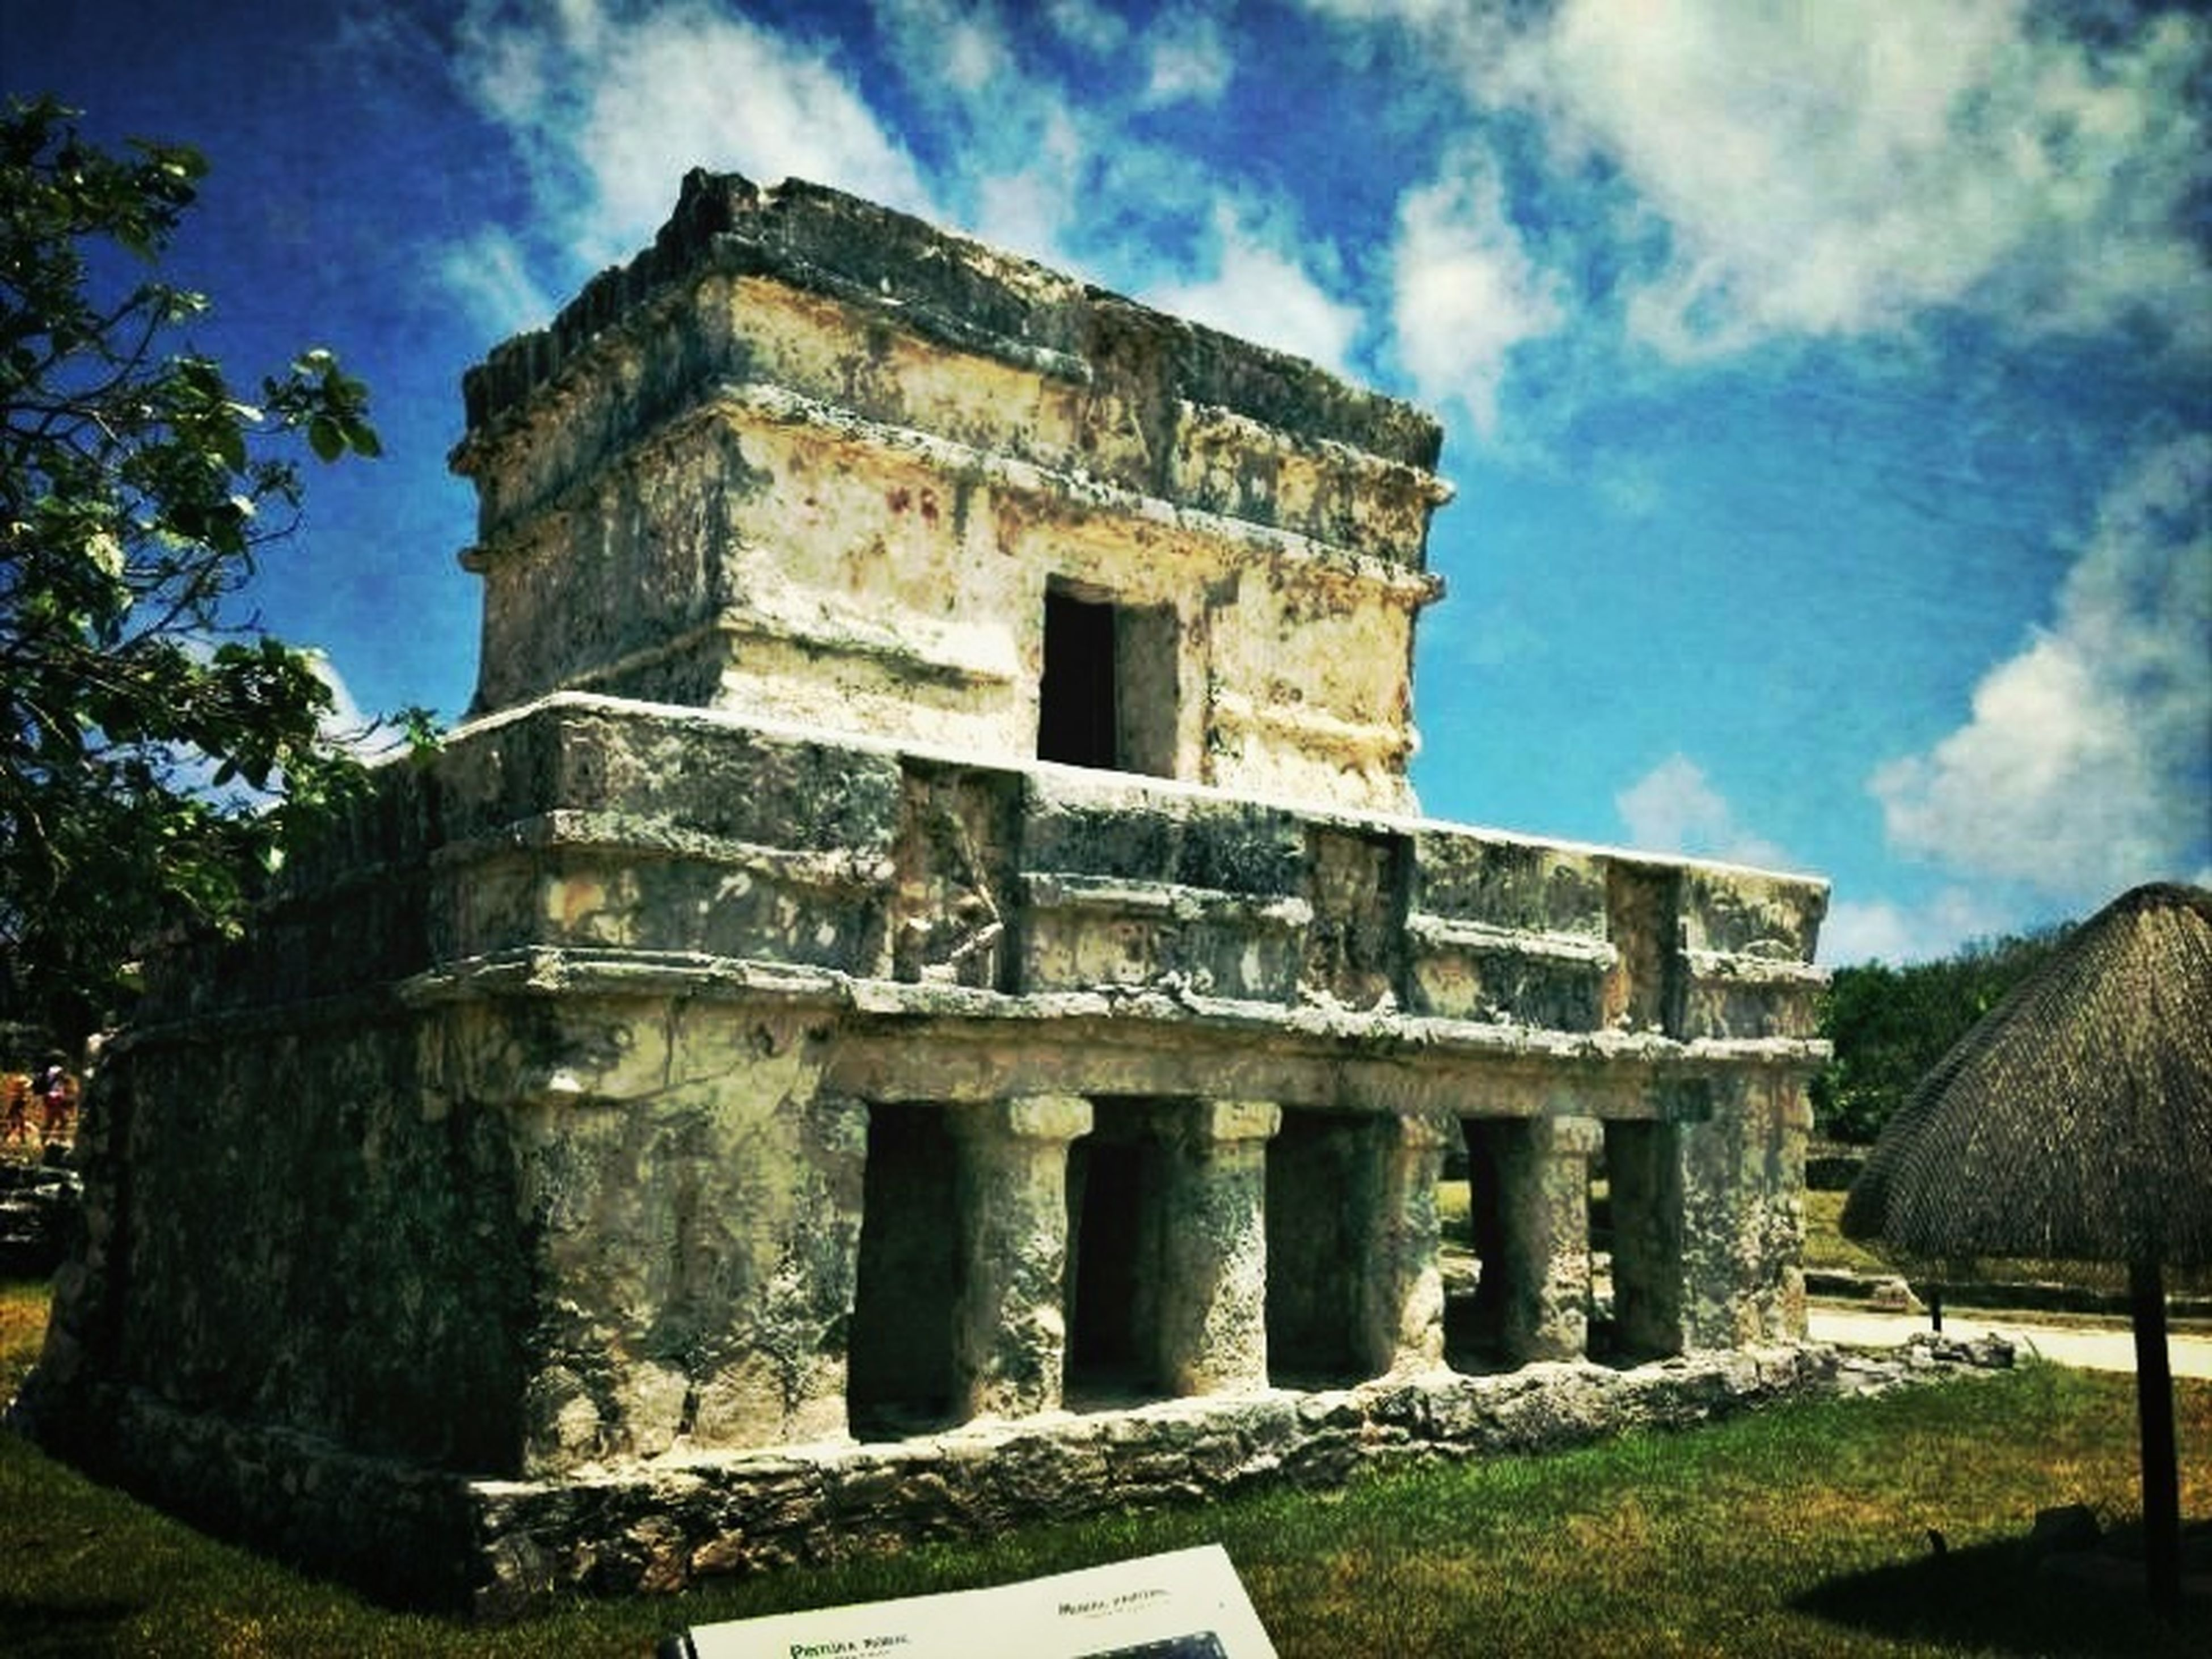 architecture, built structure, sky, building exterior, history, old ruin, cloud - sky, the past, ancient, old, low angle view, cloud, stone wall, grass, abandoned, travel destinations, damaged, day, ancient civilization, famous place